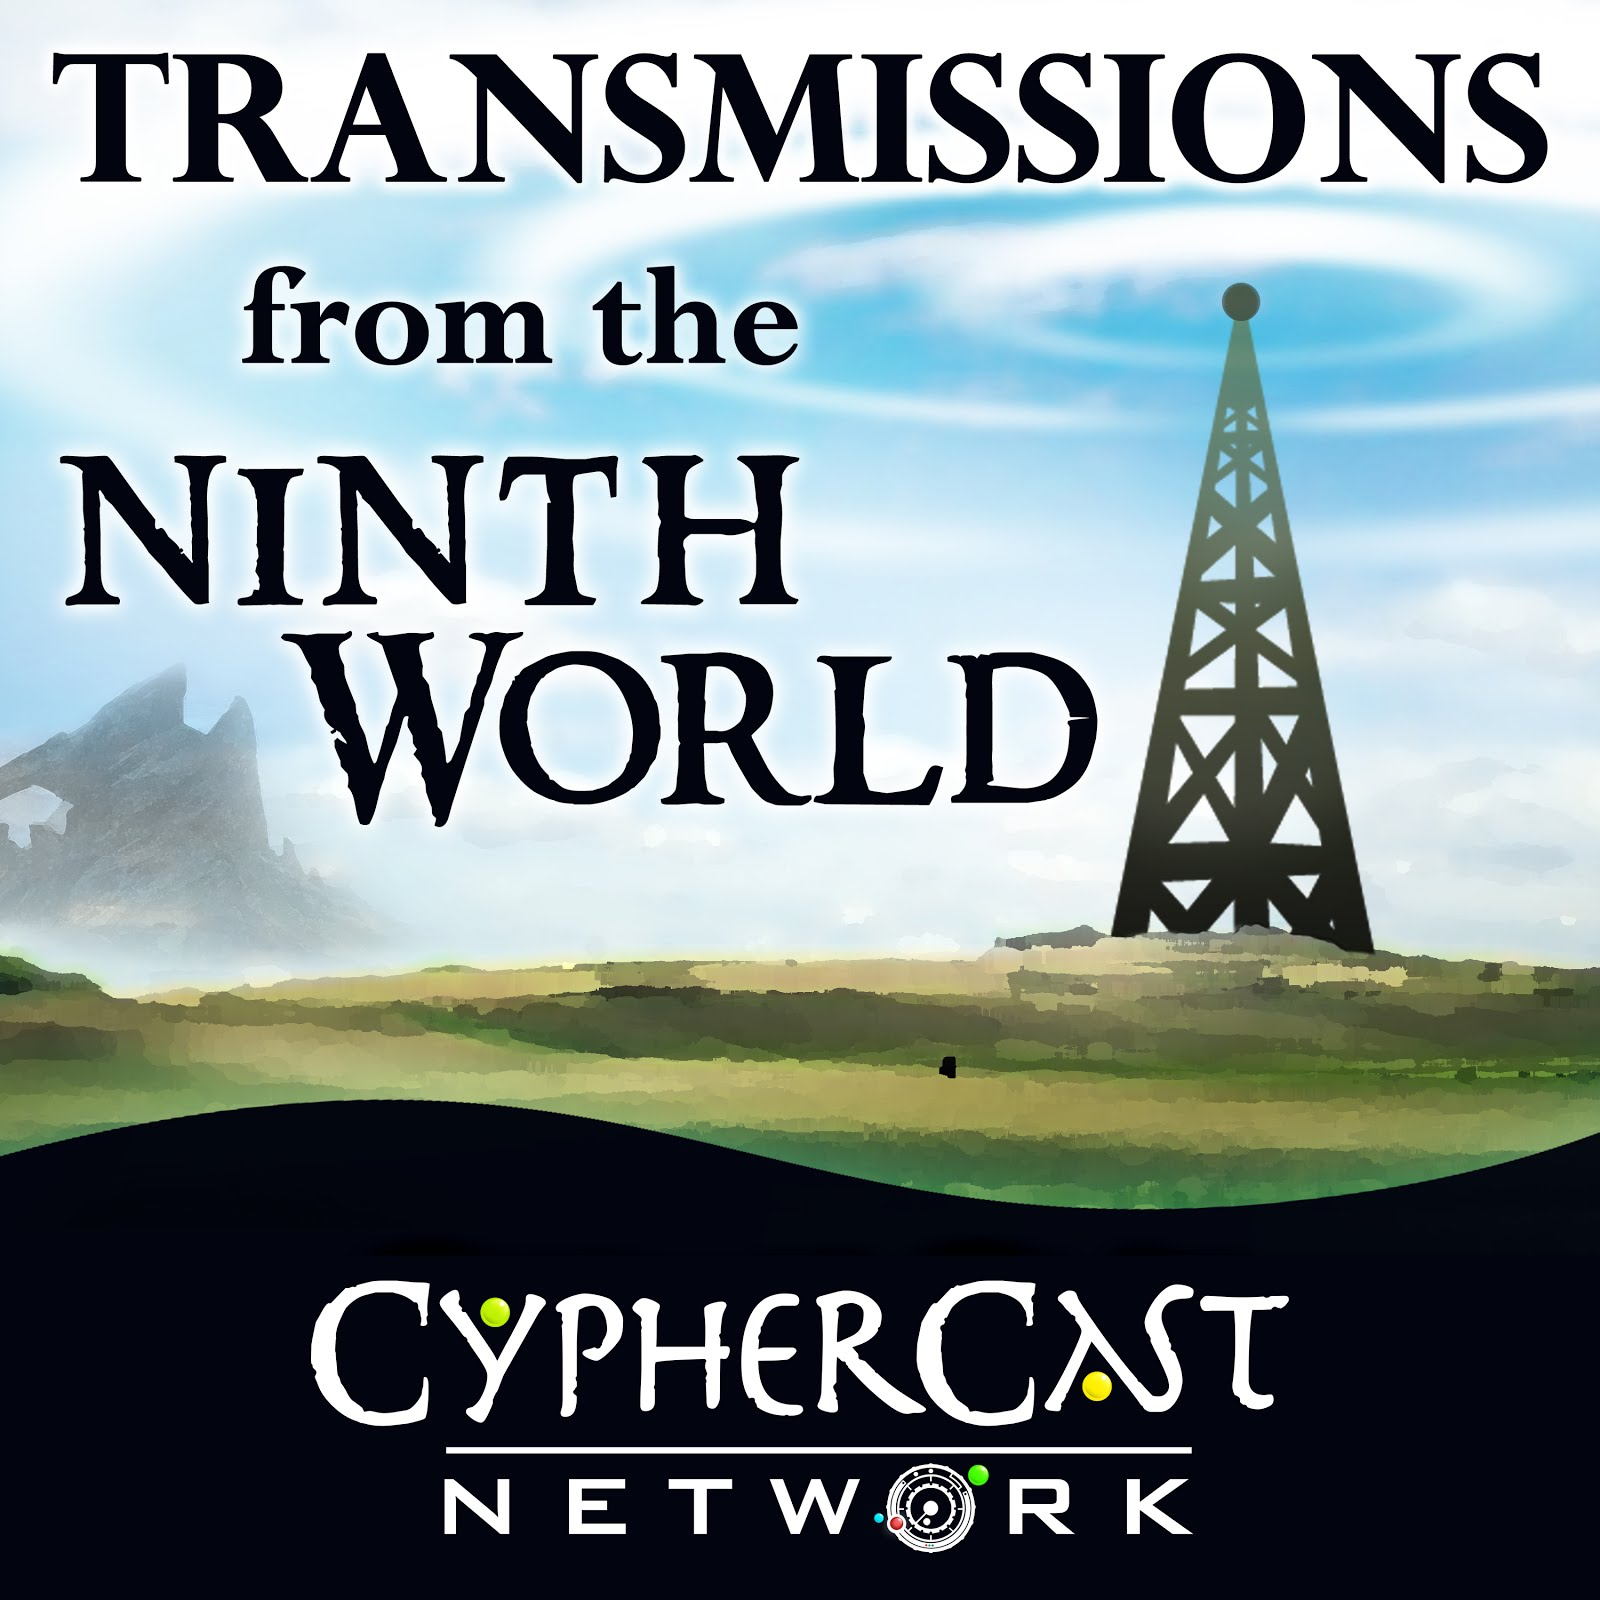 Transmissions from the Ninth World